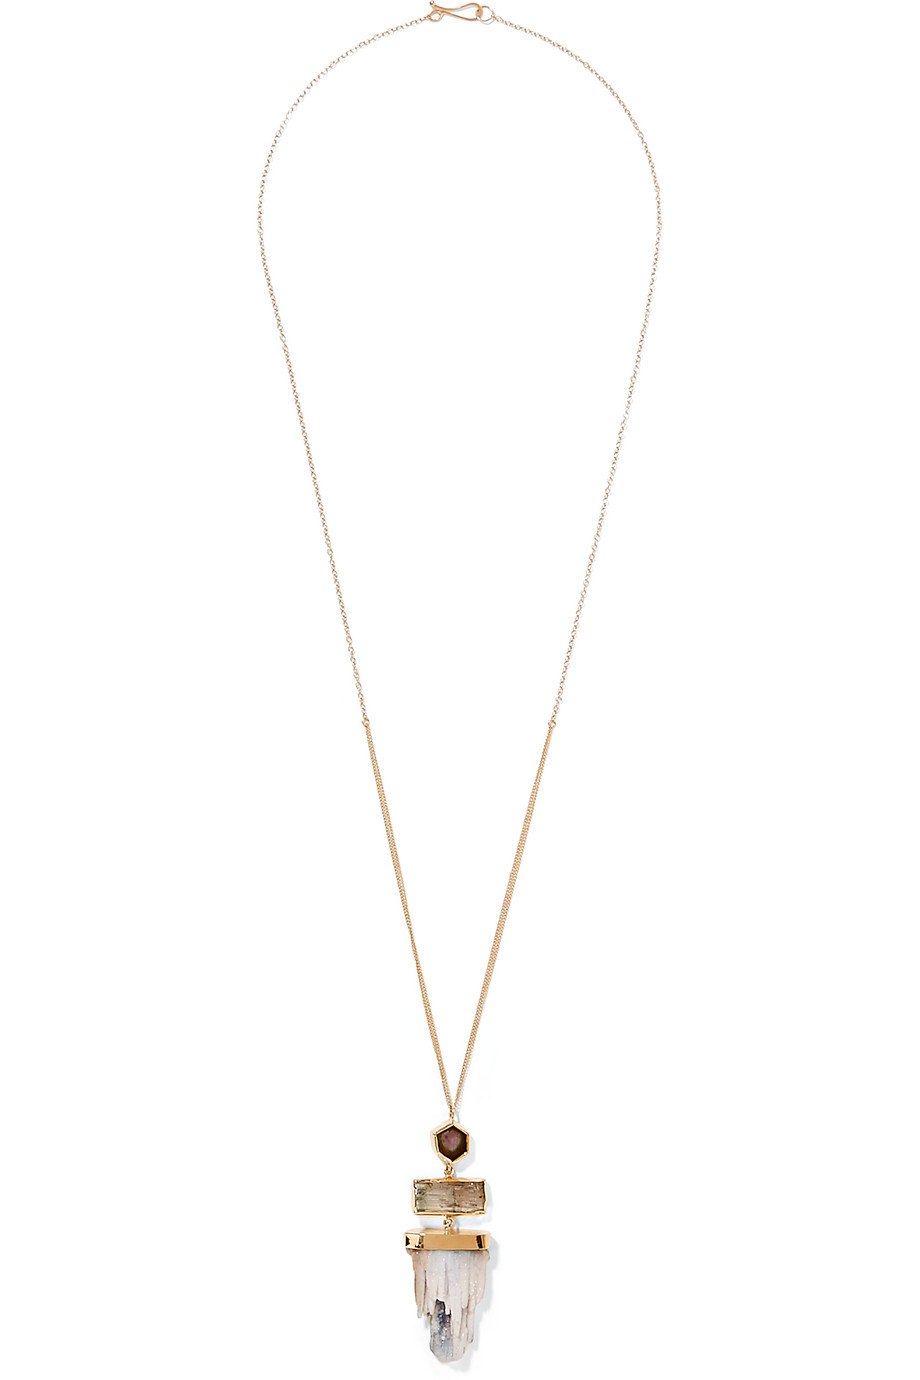 14-Karat Gold Tourmaline and Druzy Quartz Necklace, Melissa Joy Manning